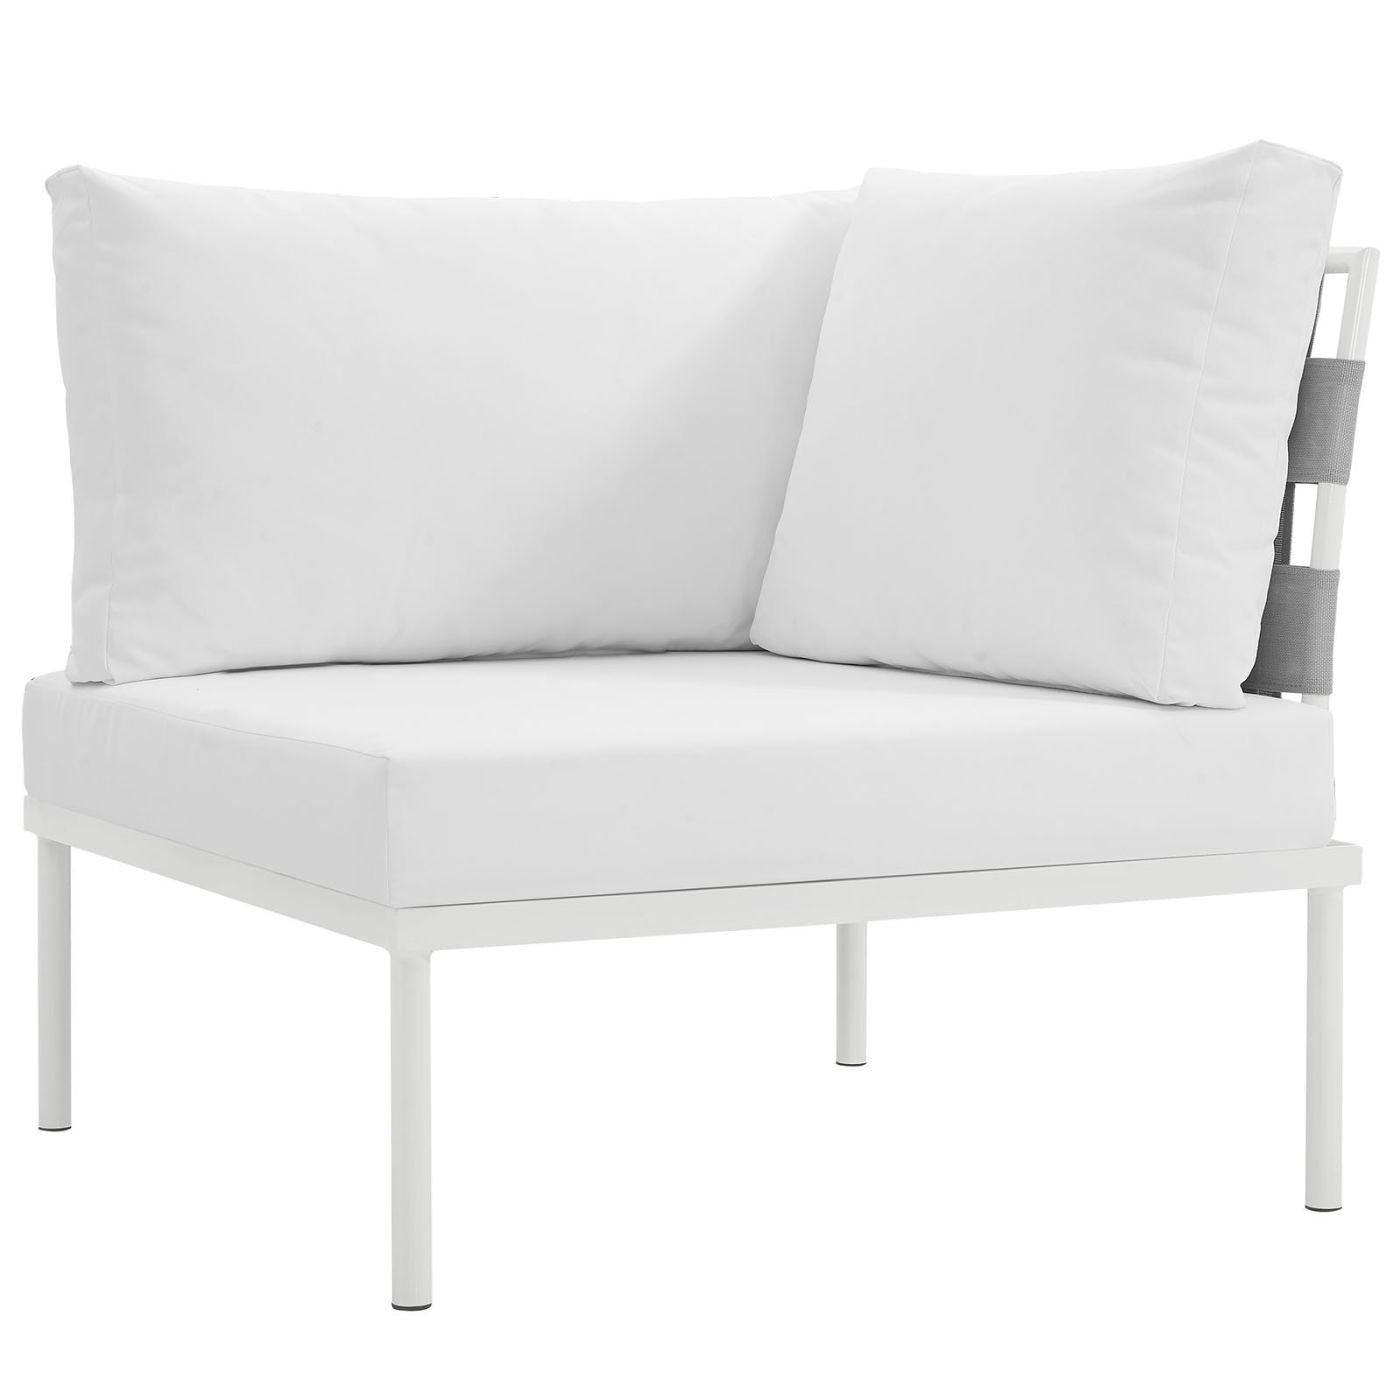 Harmony Outdoor Patio Aluminum Corner Sofa White Modular ...